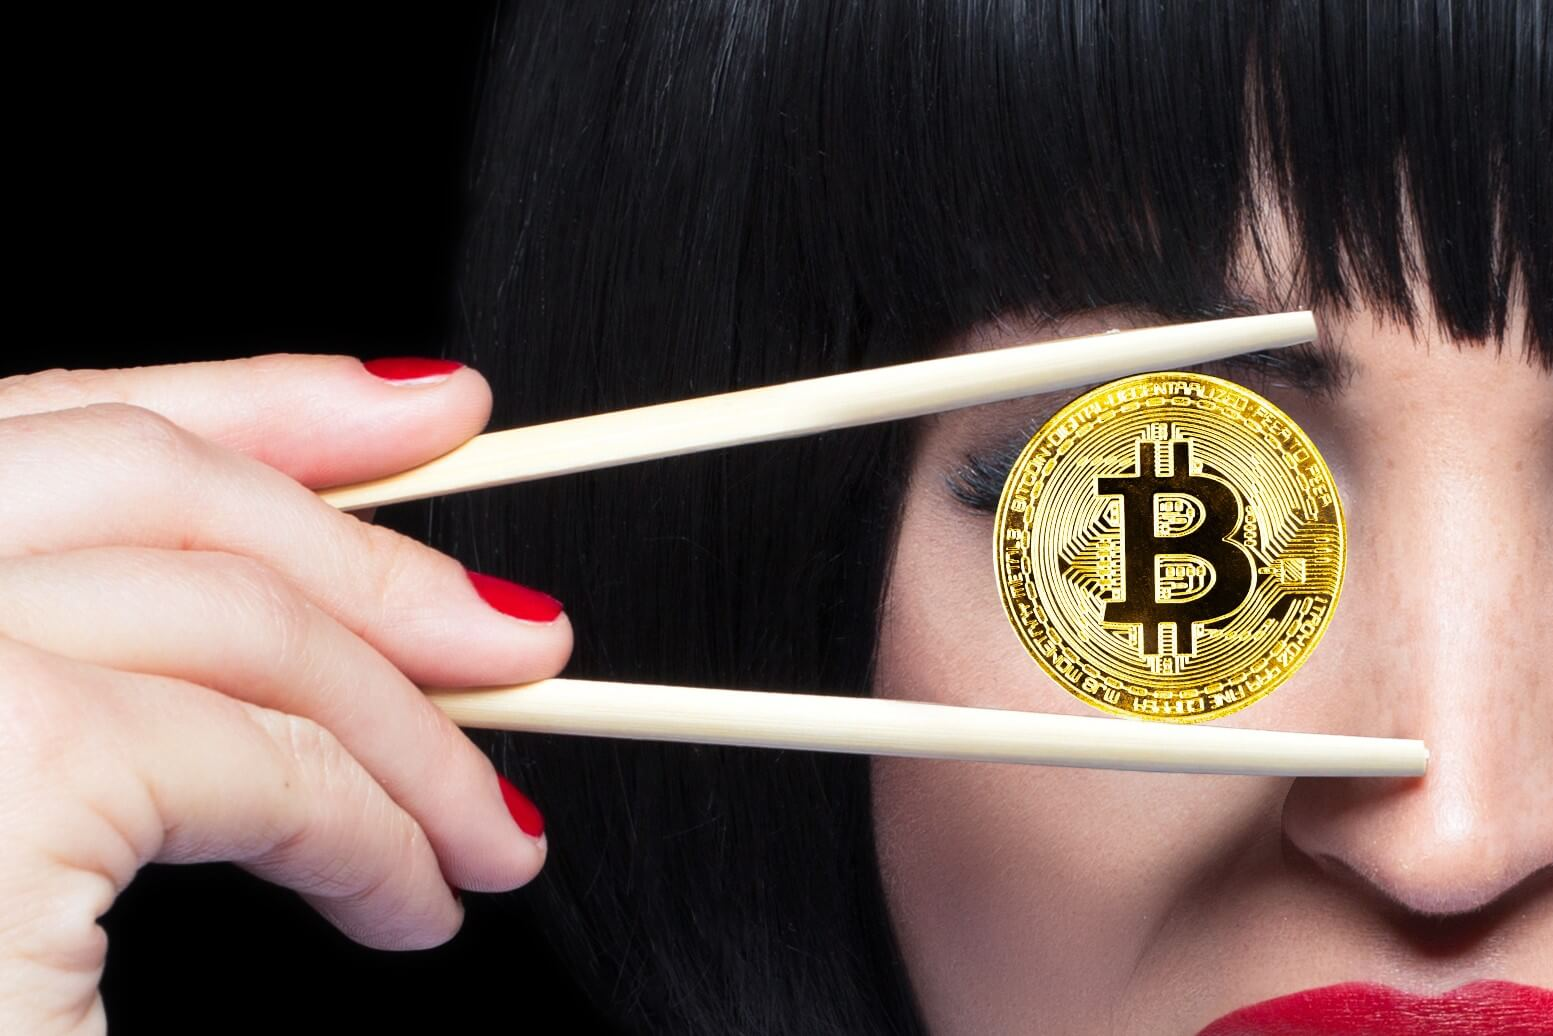 J-pop Deepens Crypto Links as Nogizaka46 Star Talks Investment on TV Show